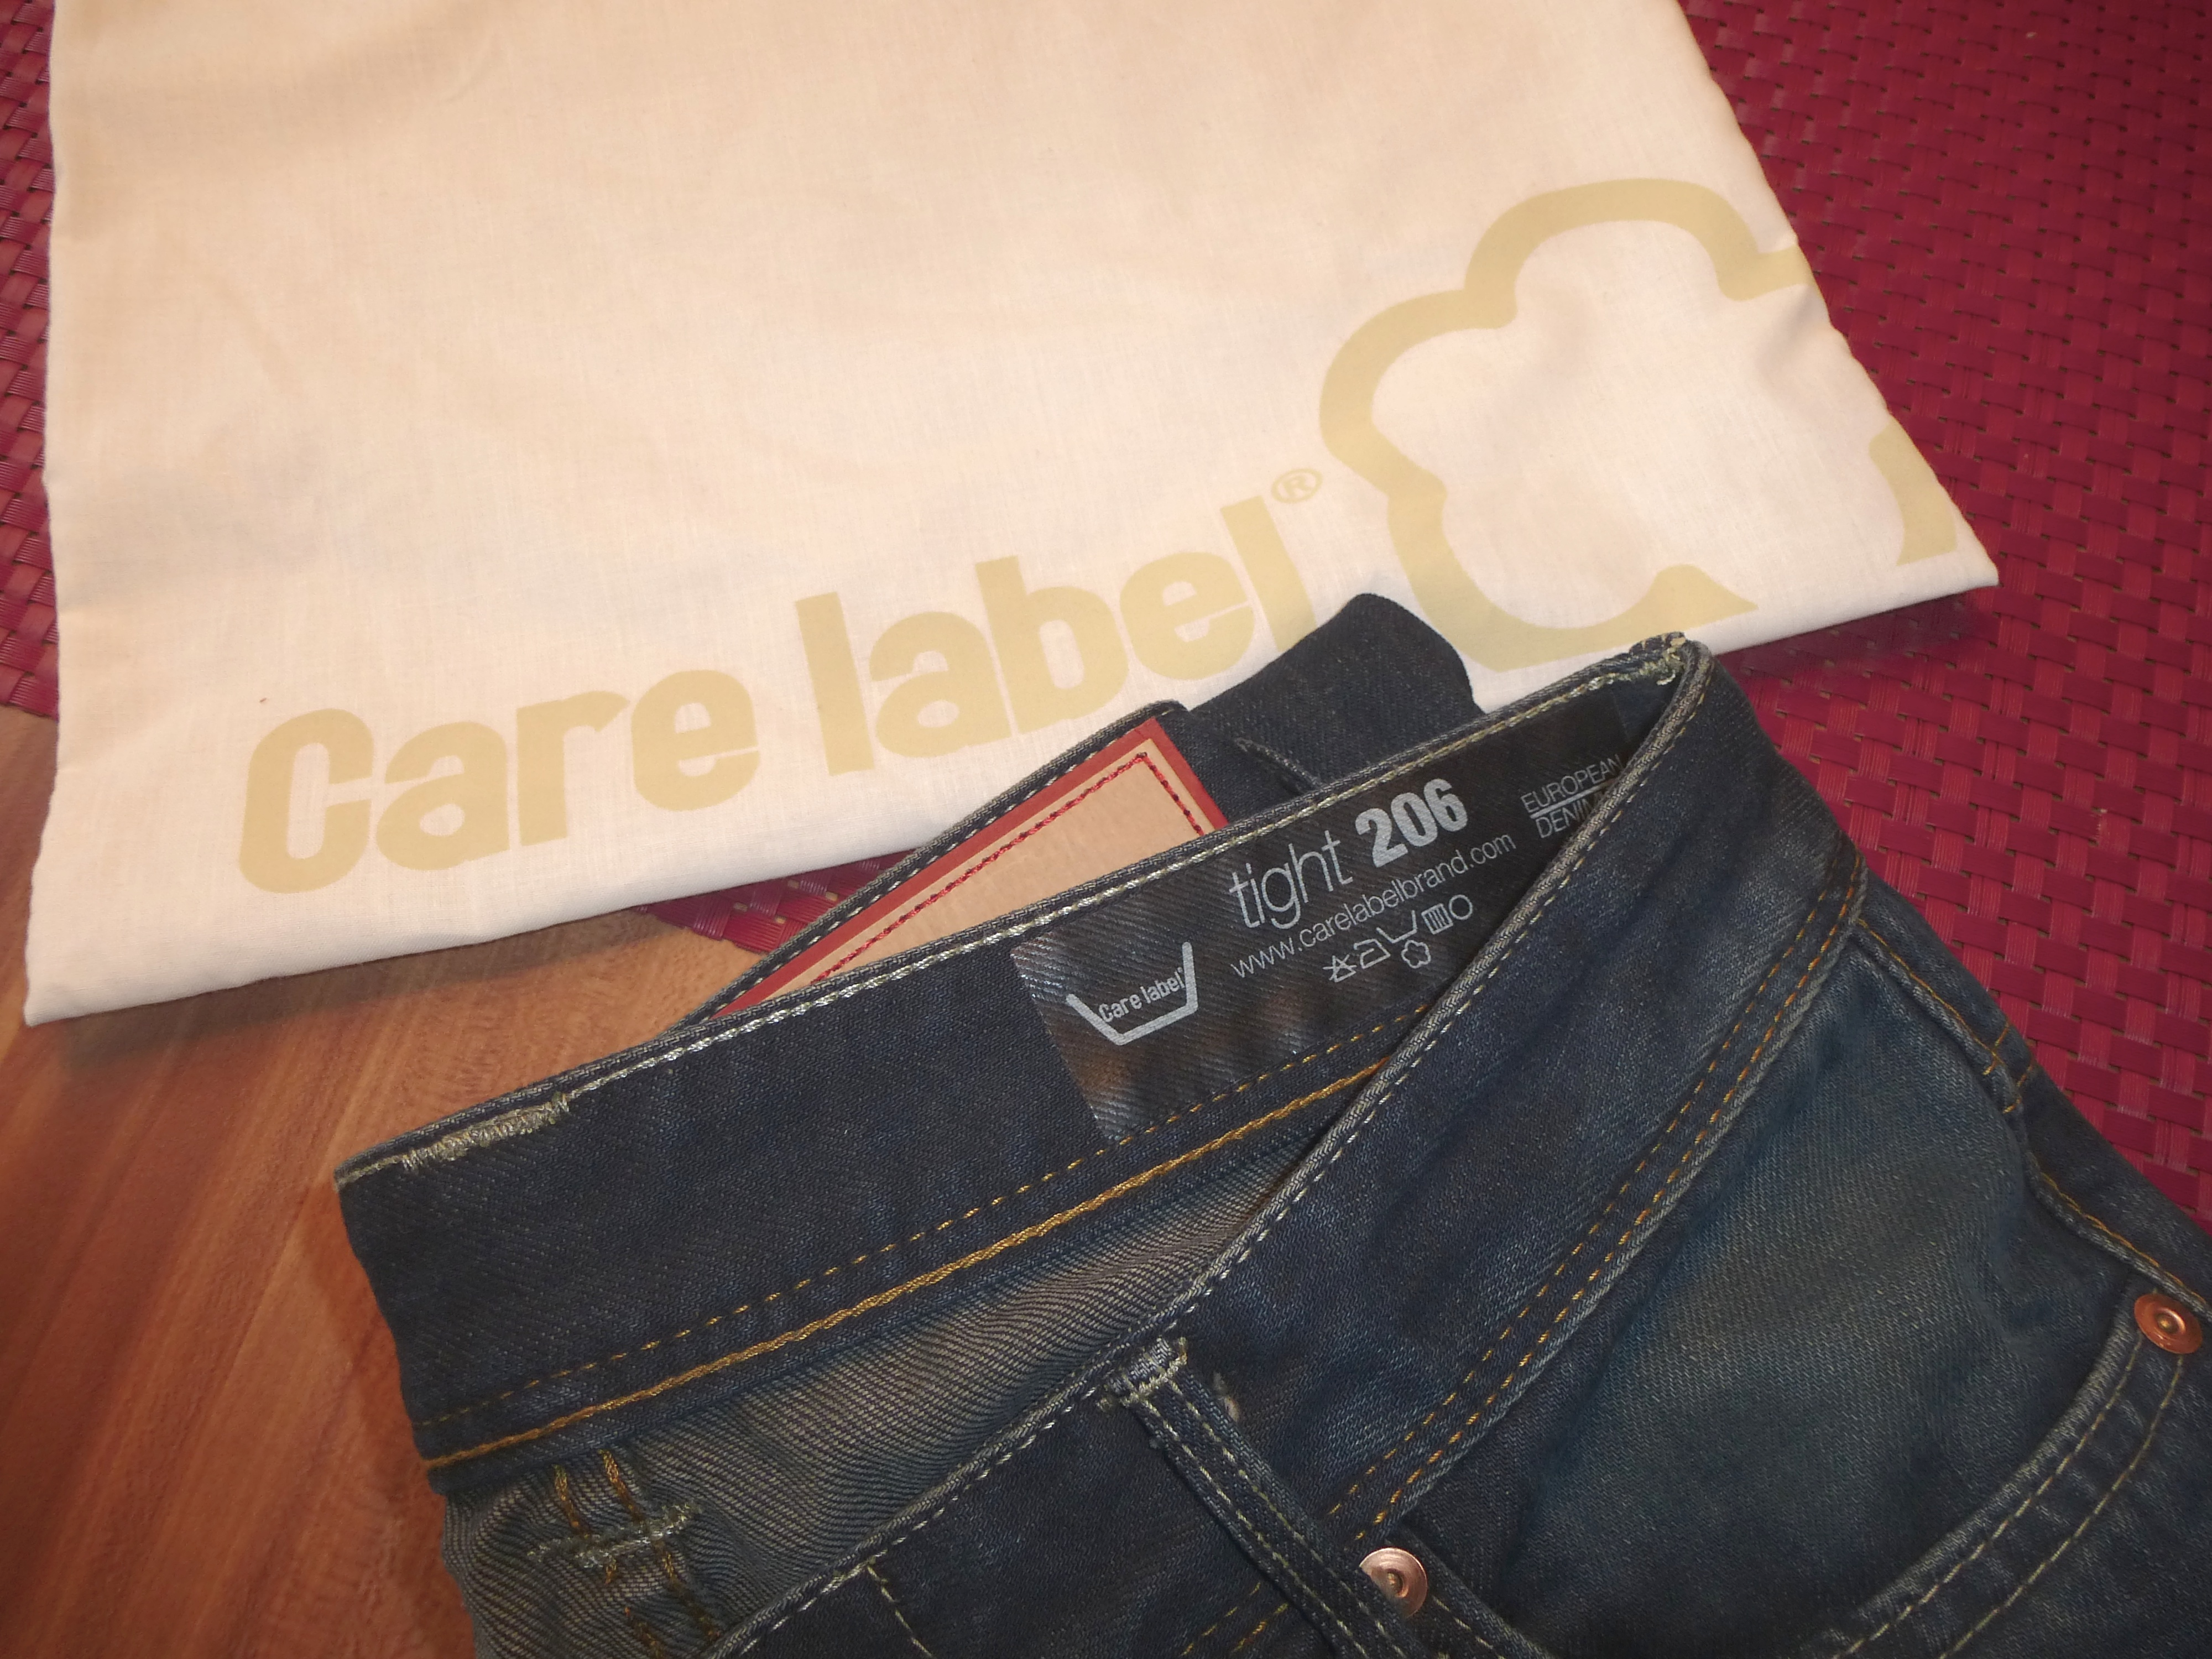 Jeans Care Label